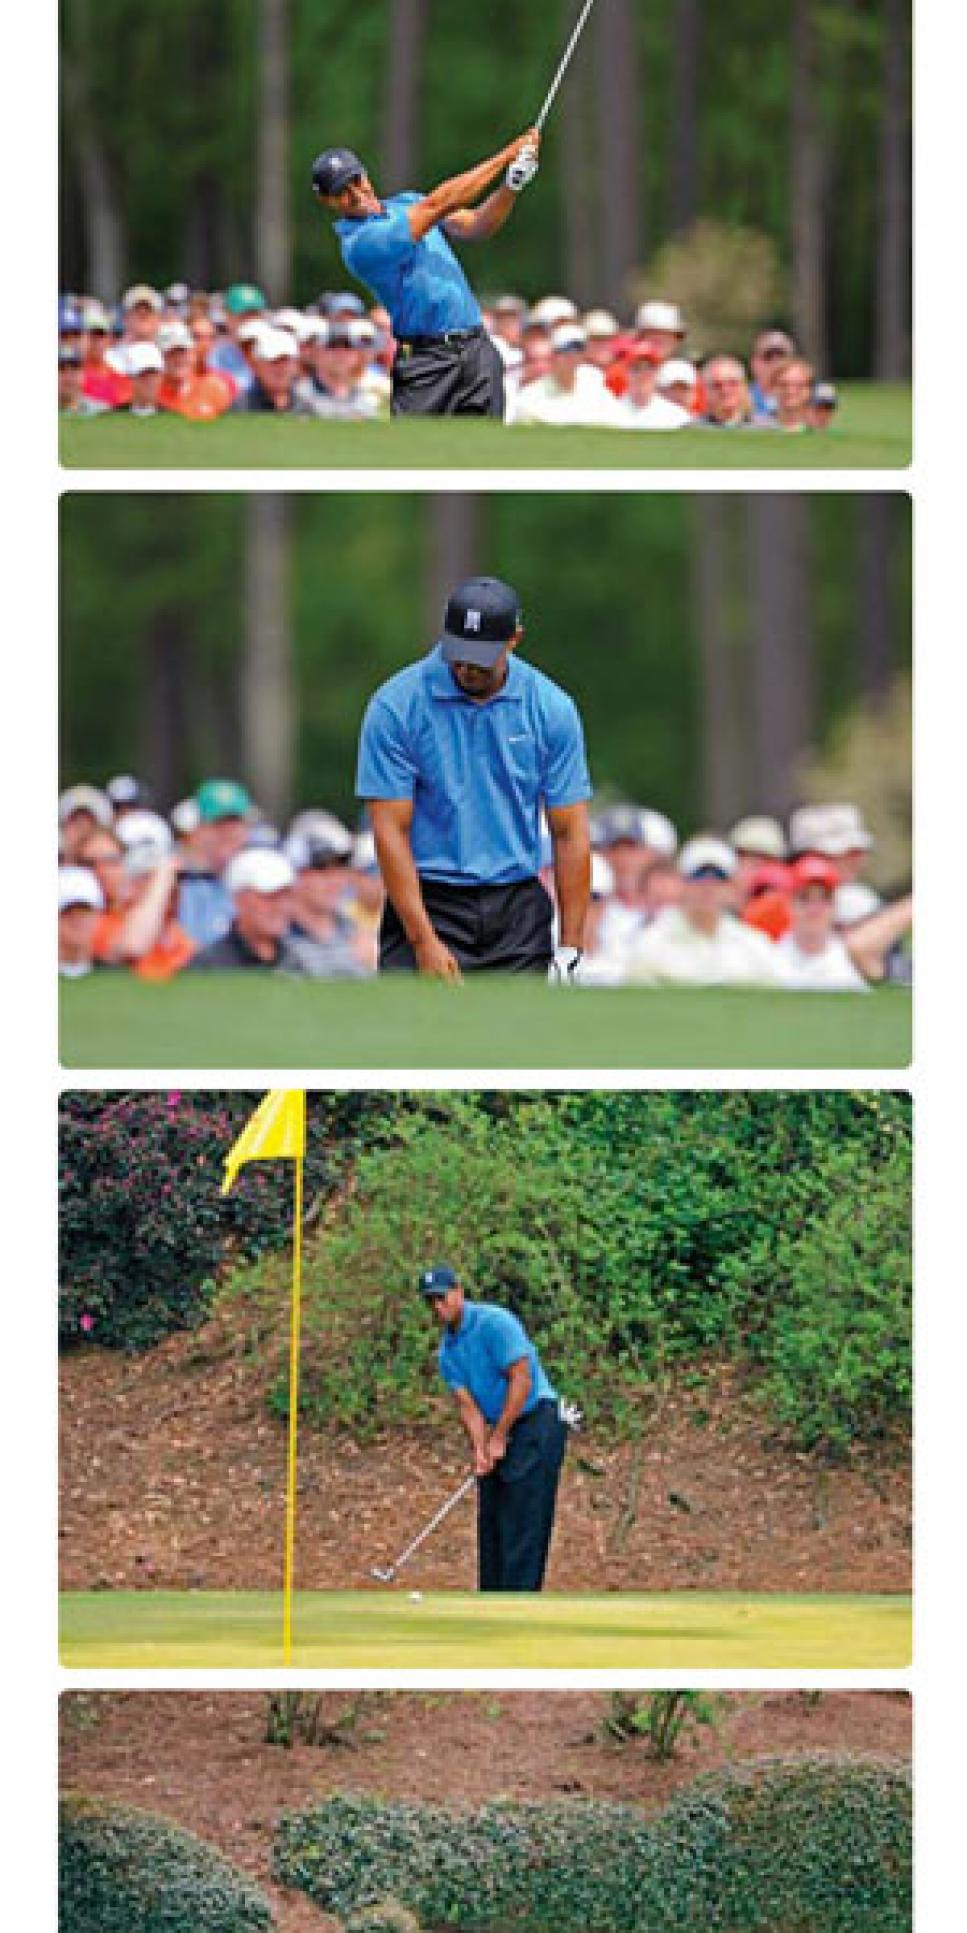 magazine-2012-04-maar02_augusta_12th_hole.jpg